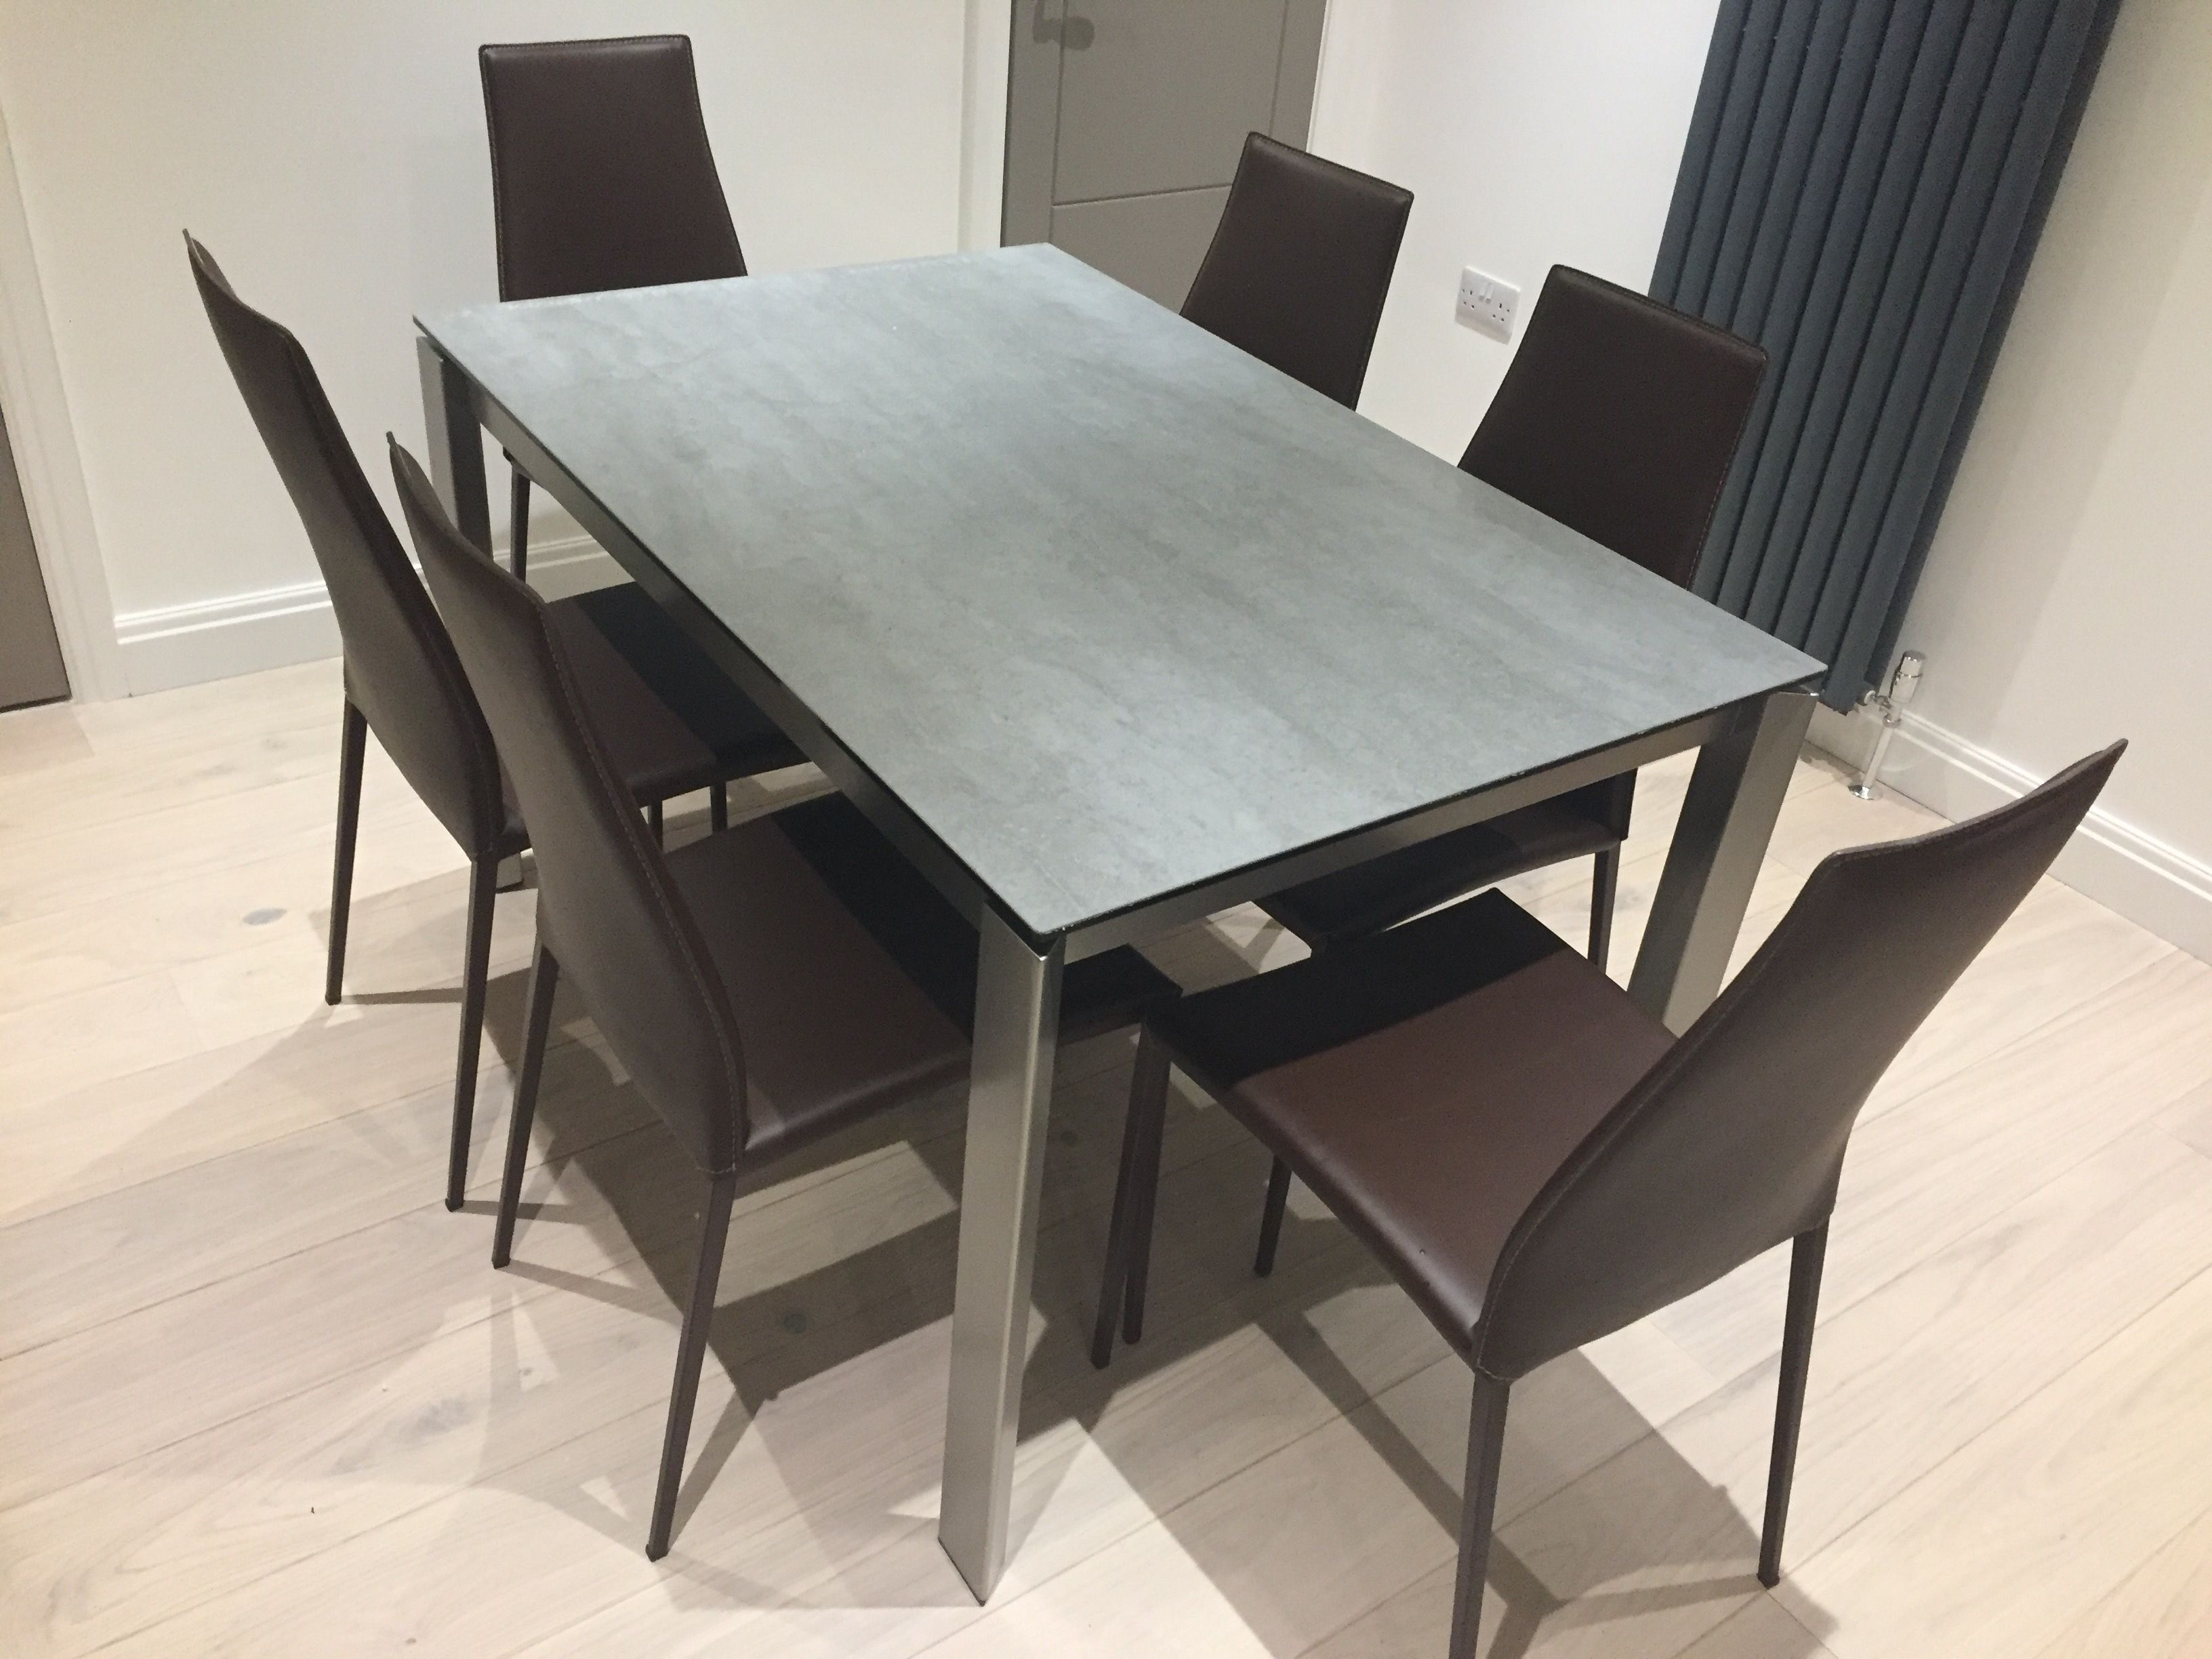 Calligaris Duca with Ceramic top | Features - Dining | Dining table ...